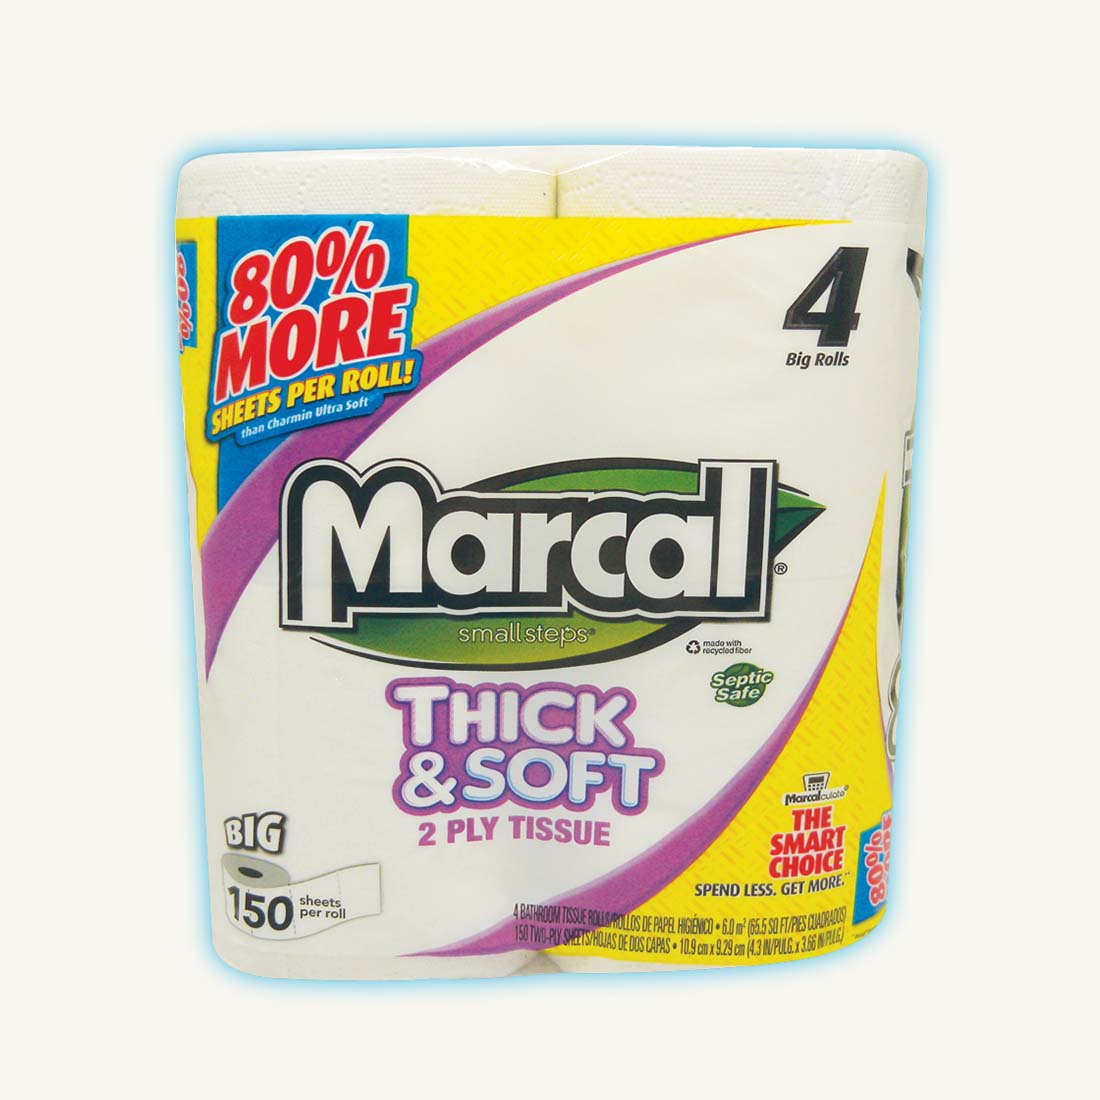 View MARCAL BATH TISSUE 4 PACK 150-2 PLY SHEETS THICK & SOFT